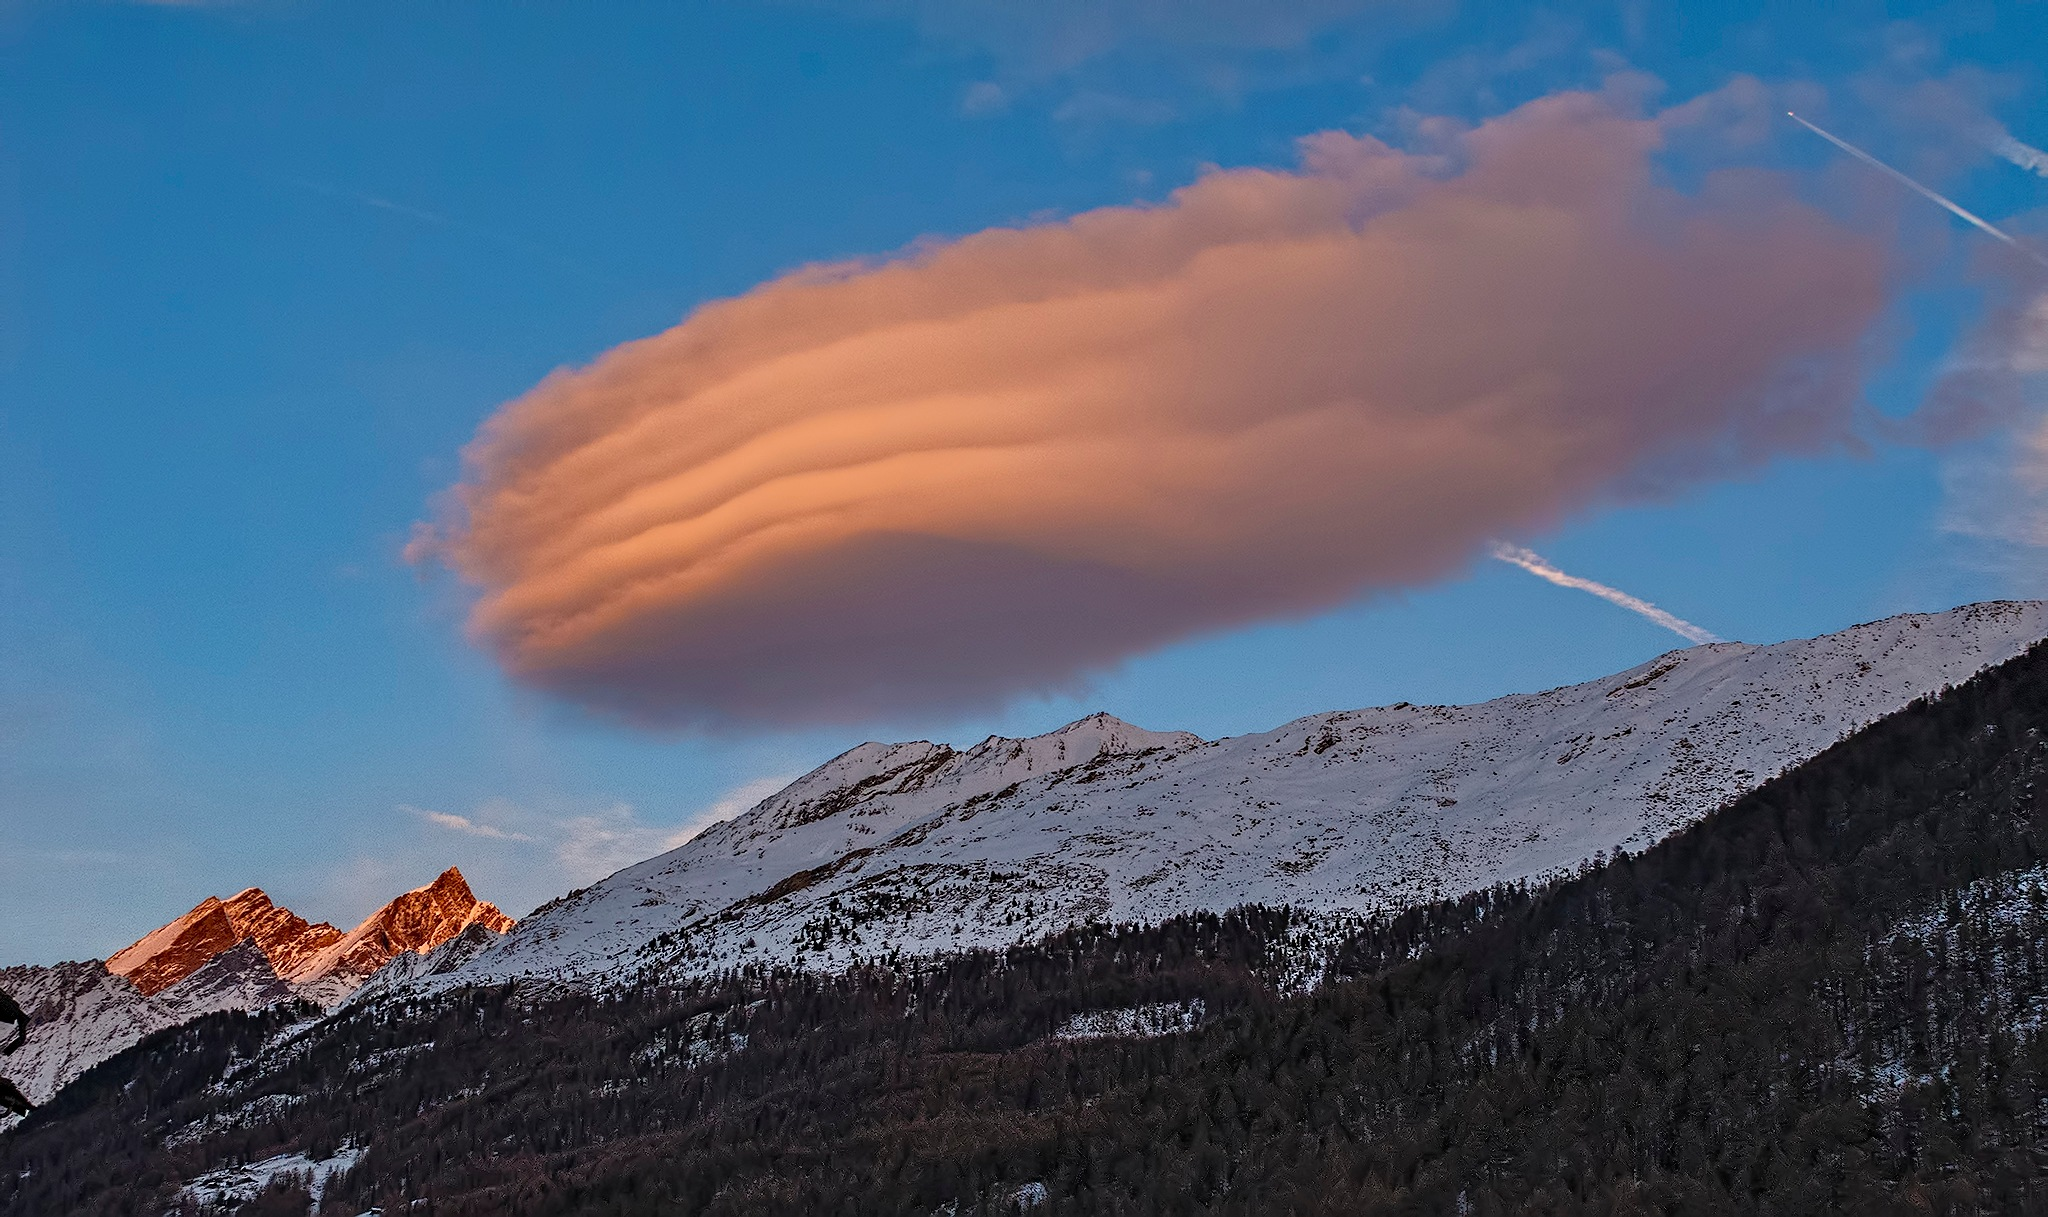 Another Alpenglow by Herbert Stachelberger